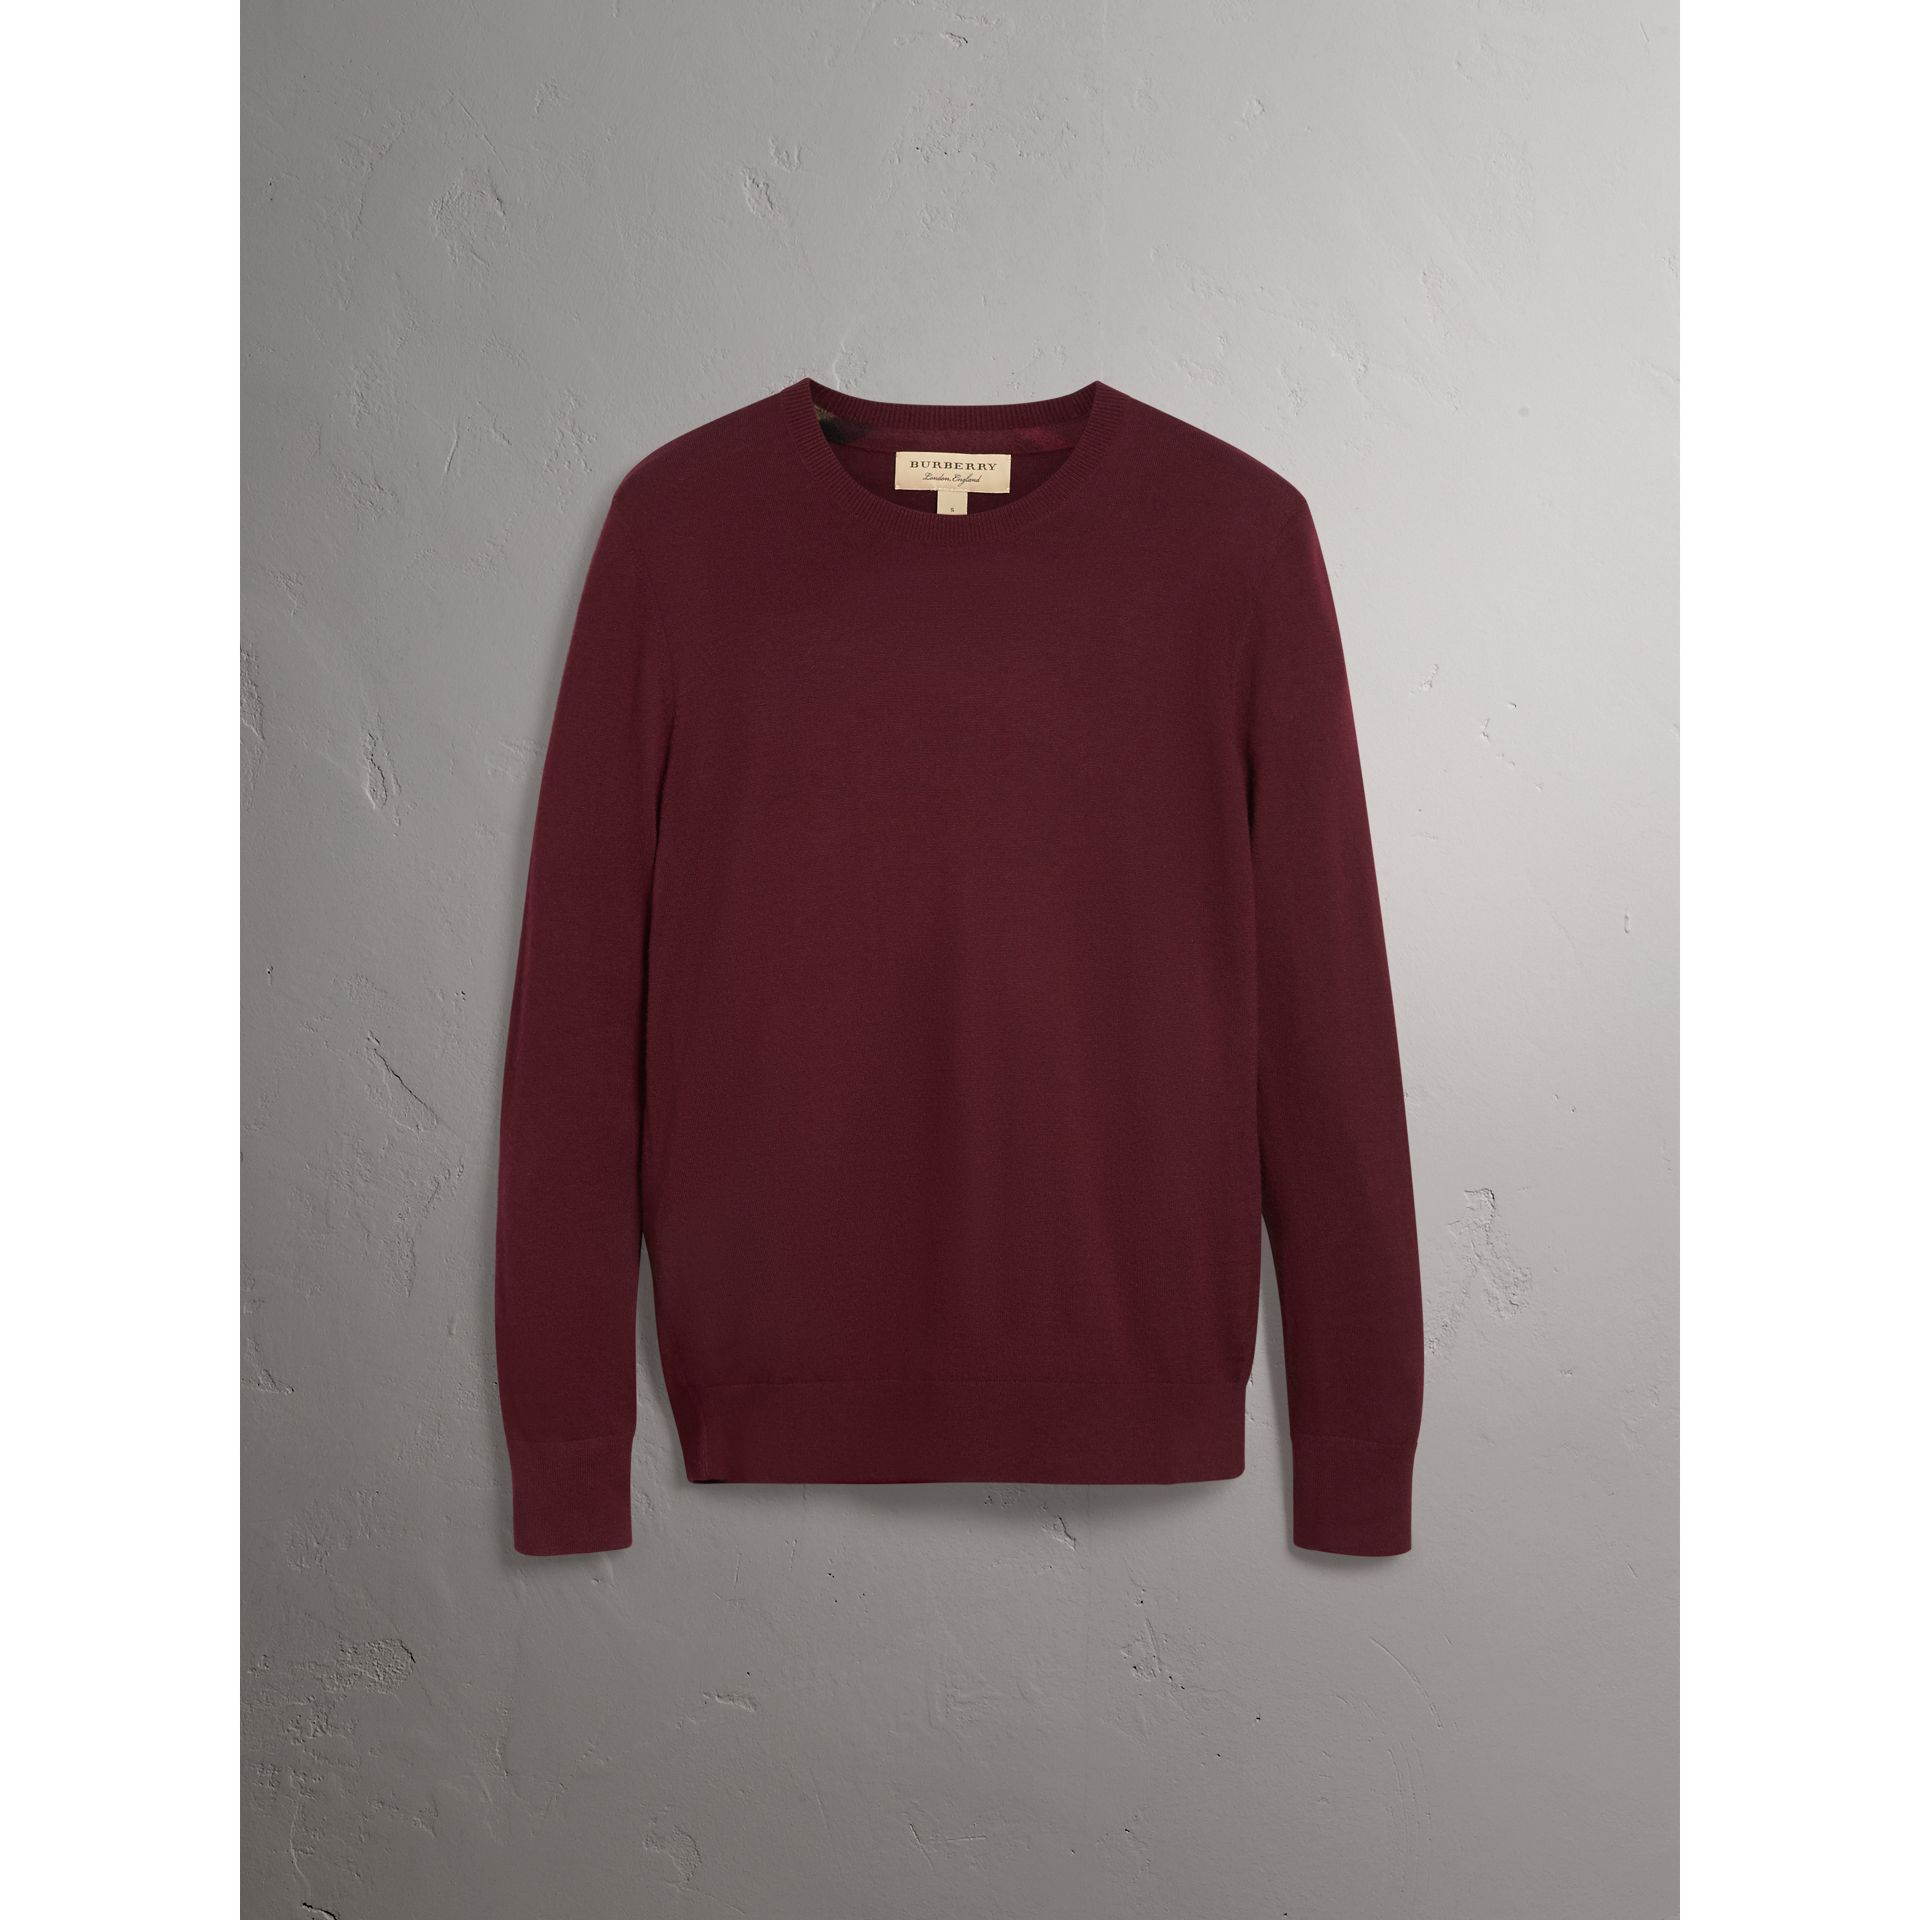 Check Jacquard Detail Cashmere Sweater in Deep Claret - Men | Burberry United Kingdom - gallery image 3